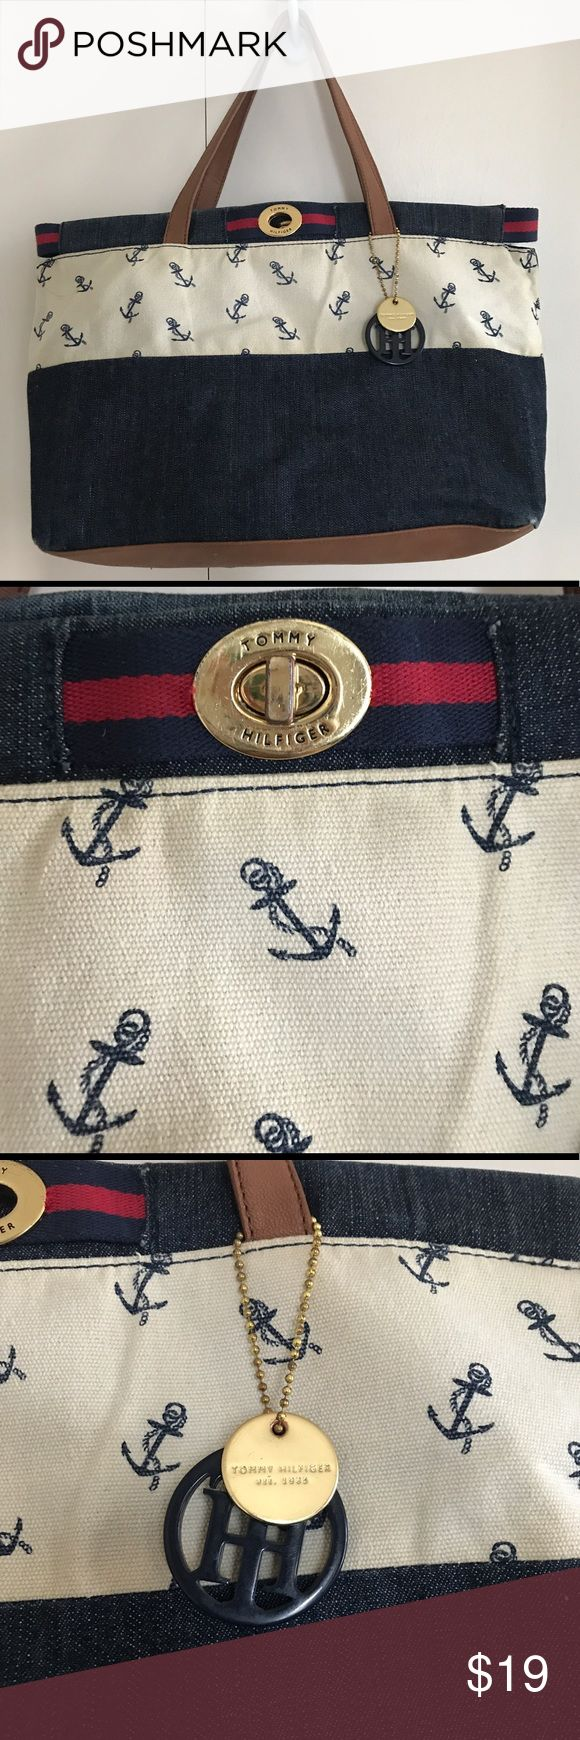 Tommy Hilfiger Nautical Tote Bag Tommy Hilfiger Nautical Tote Bag. This bag is clean and was well cared for. The bottom has a few spots of wear and is pictured. The bag is mostly denim. Tommy Hilfiger Bags Totes